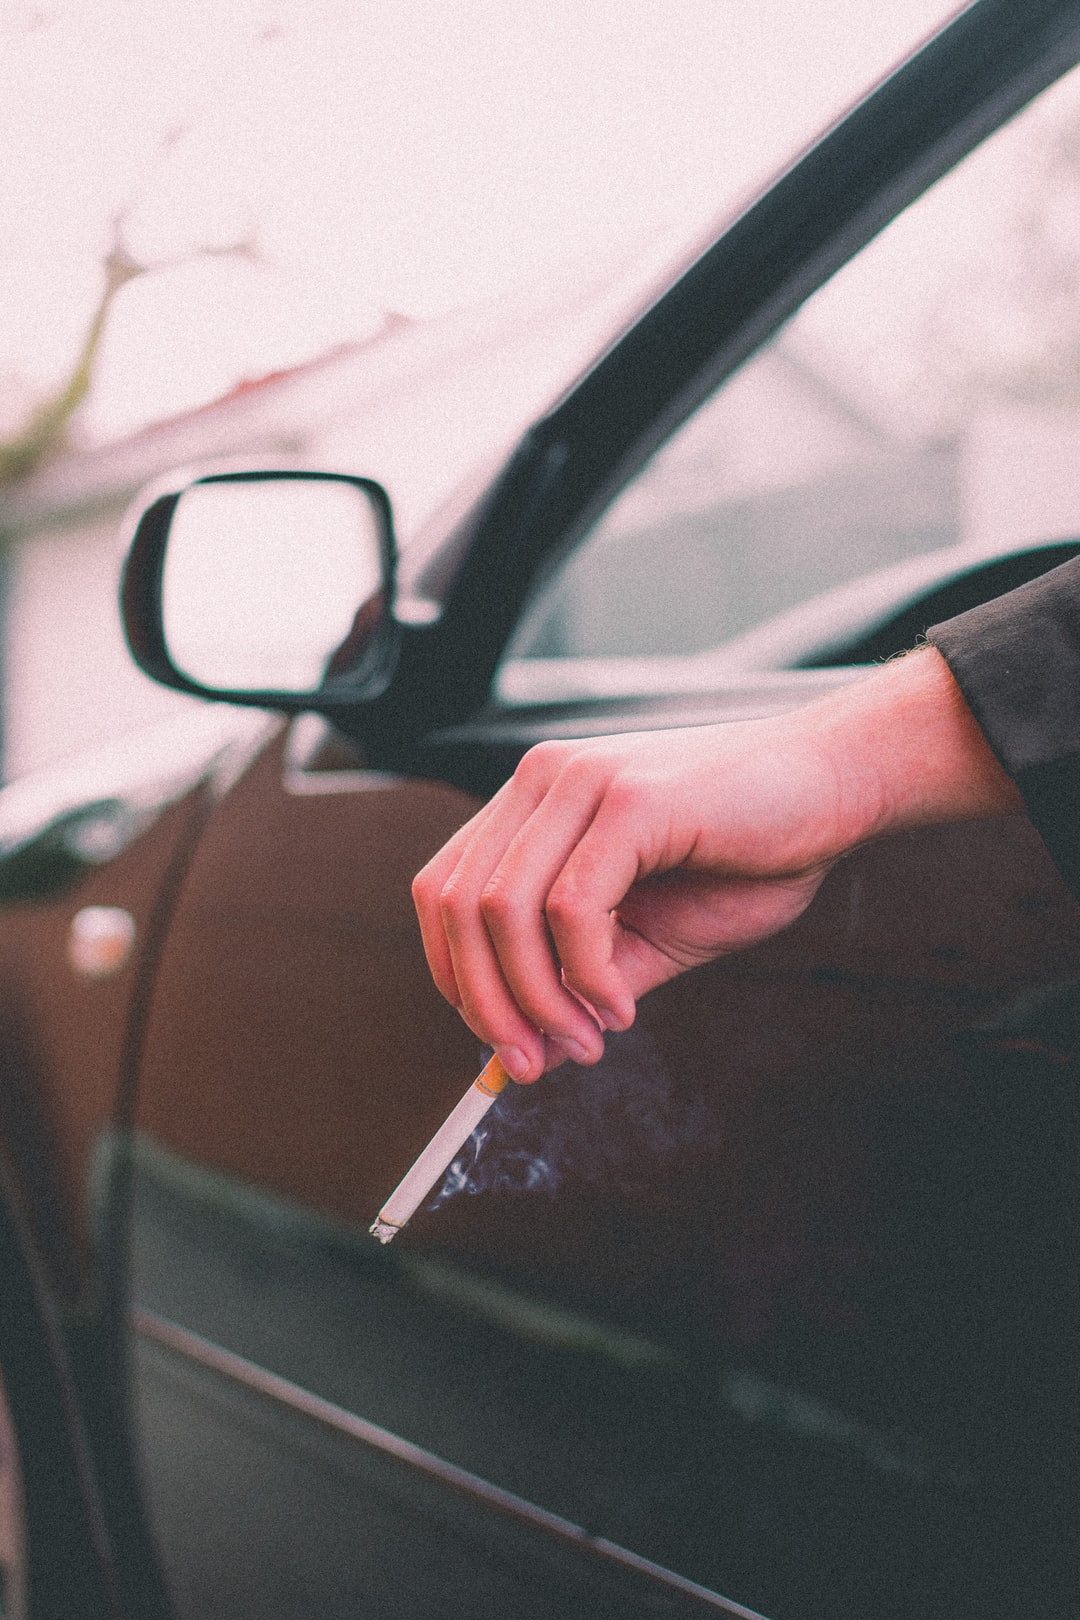 My friends and I were on a short film set for our class at school, and our main actor needed to smoke a cigarette so I told him to stay in the car. I was waiting for this moment without having to force it or to set up a shot. It all happened naturally and that's the beauty of photography.